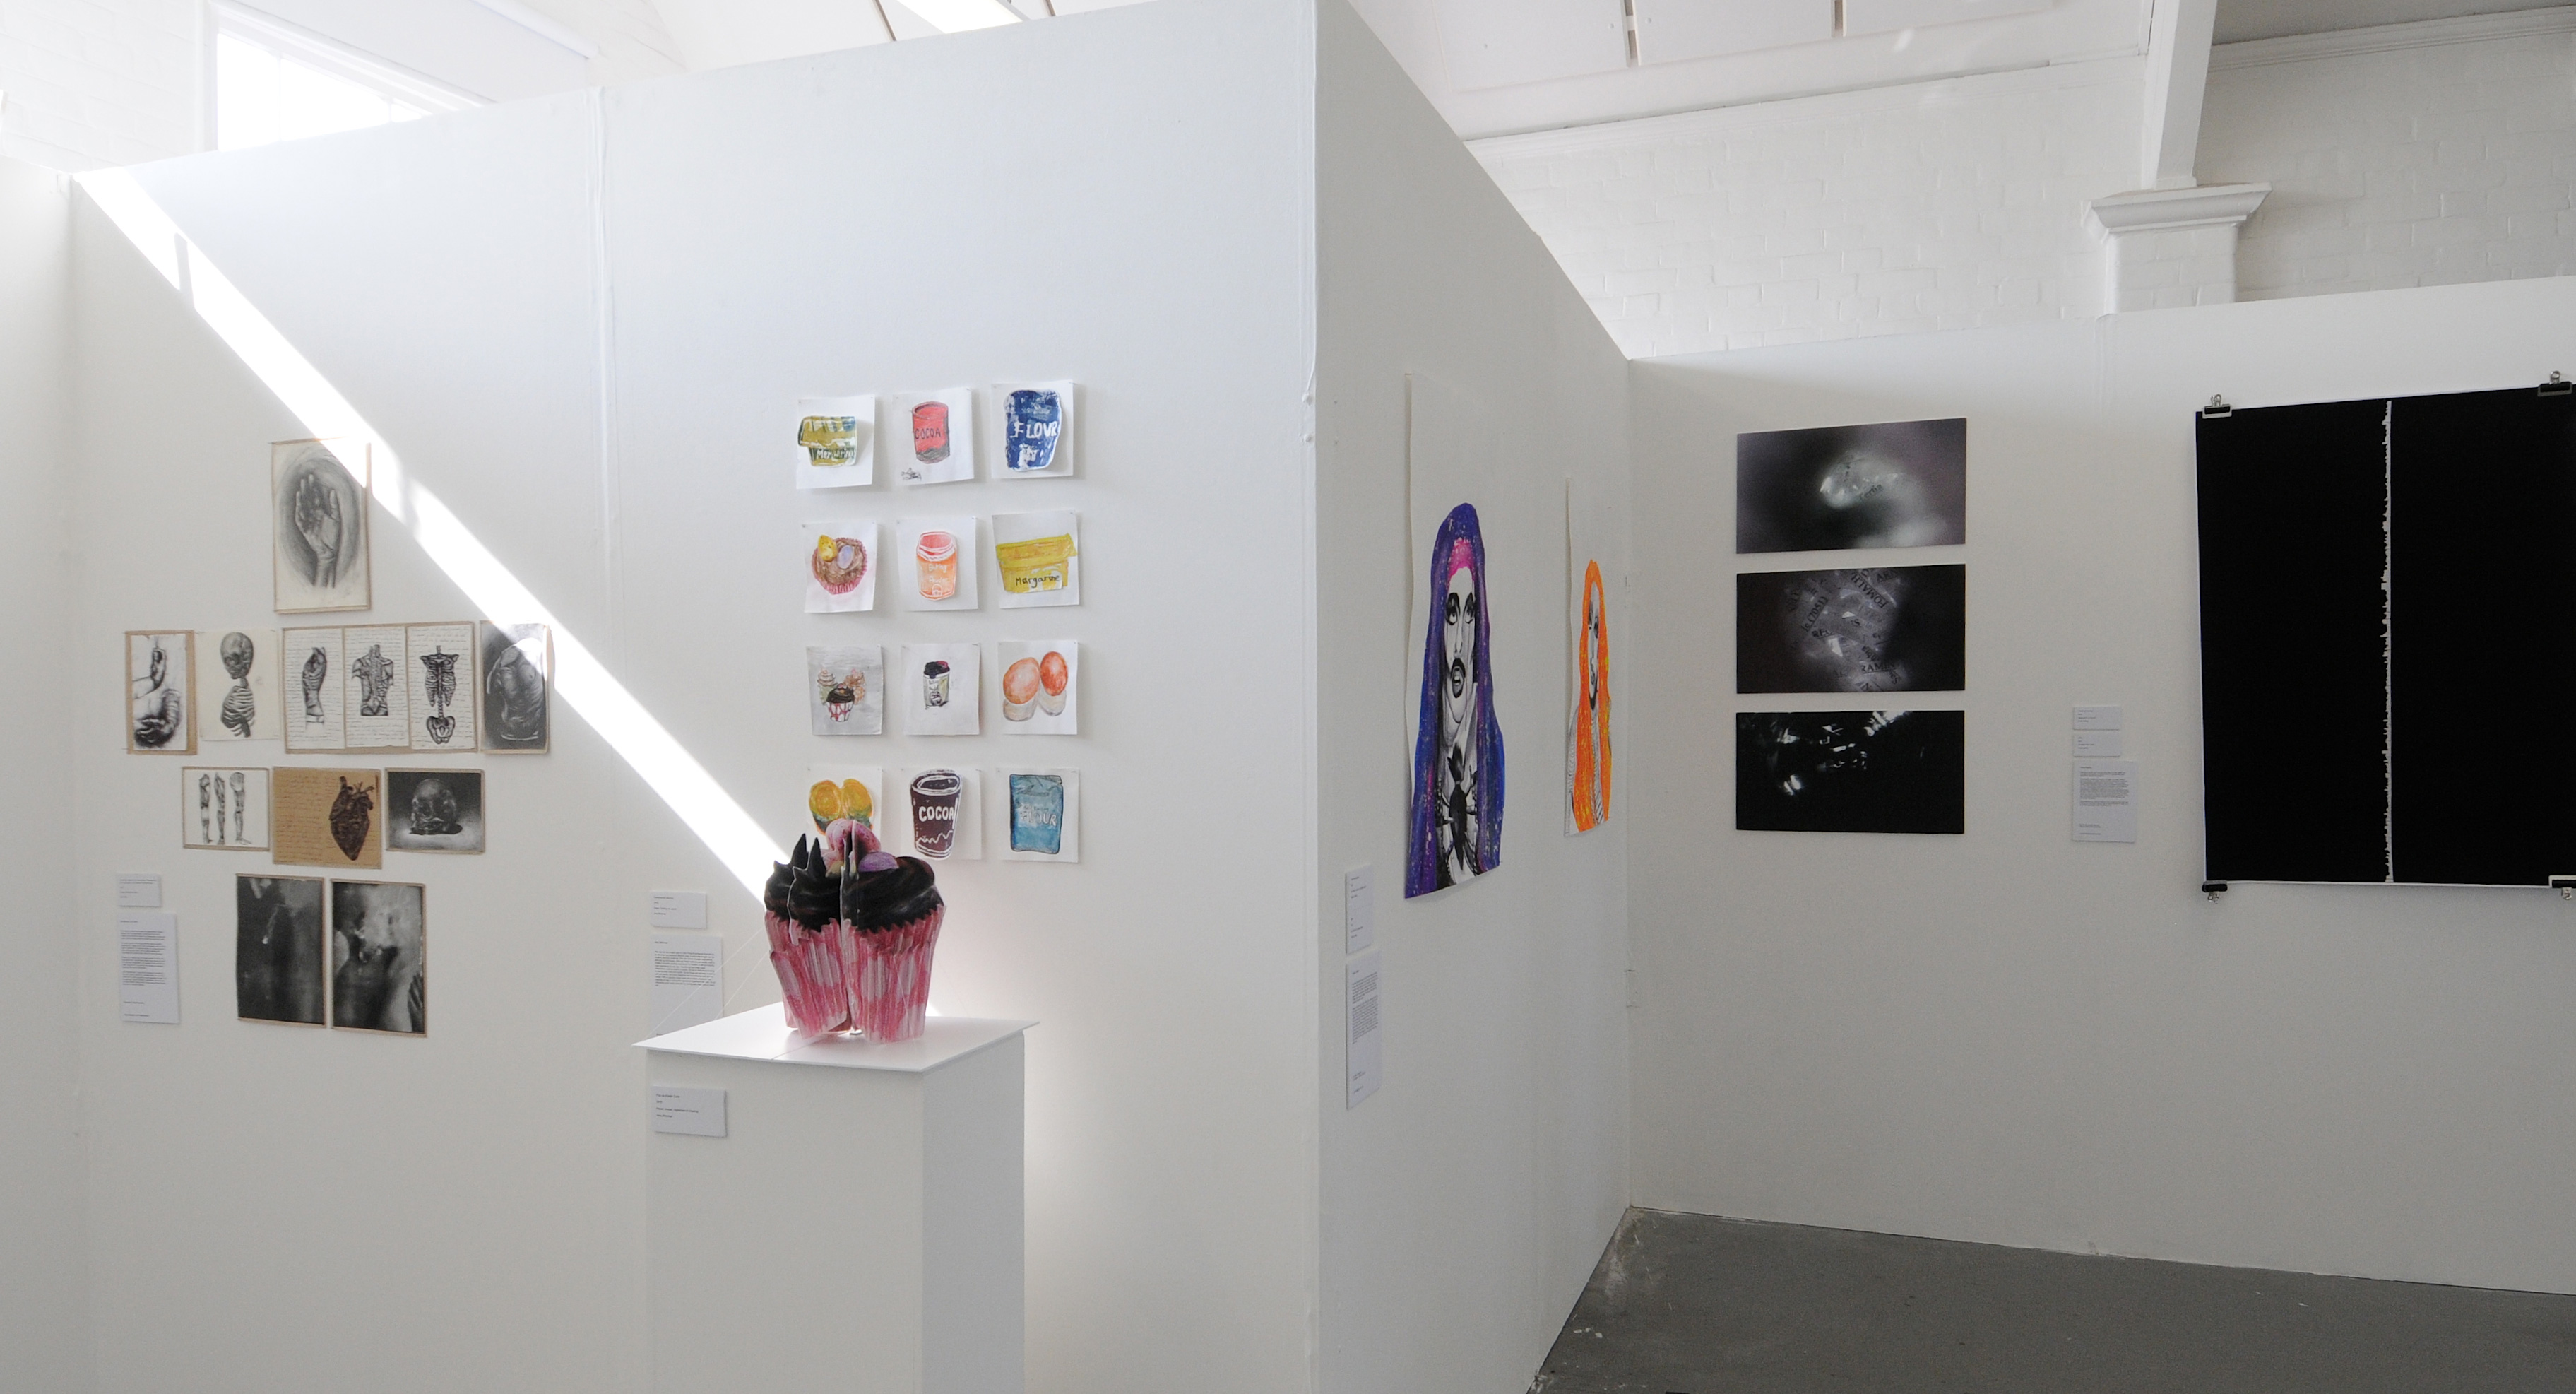 Student artwork showcased at London exhibition